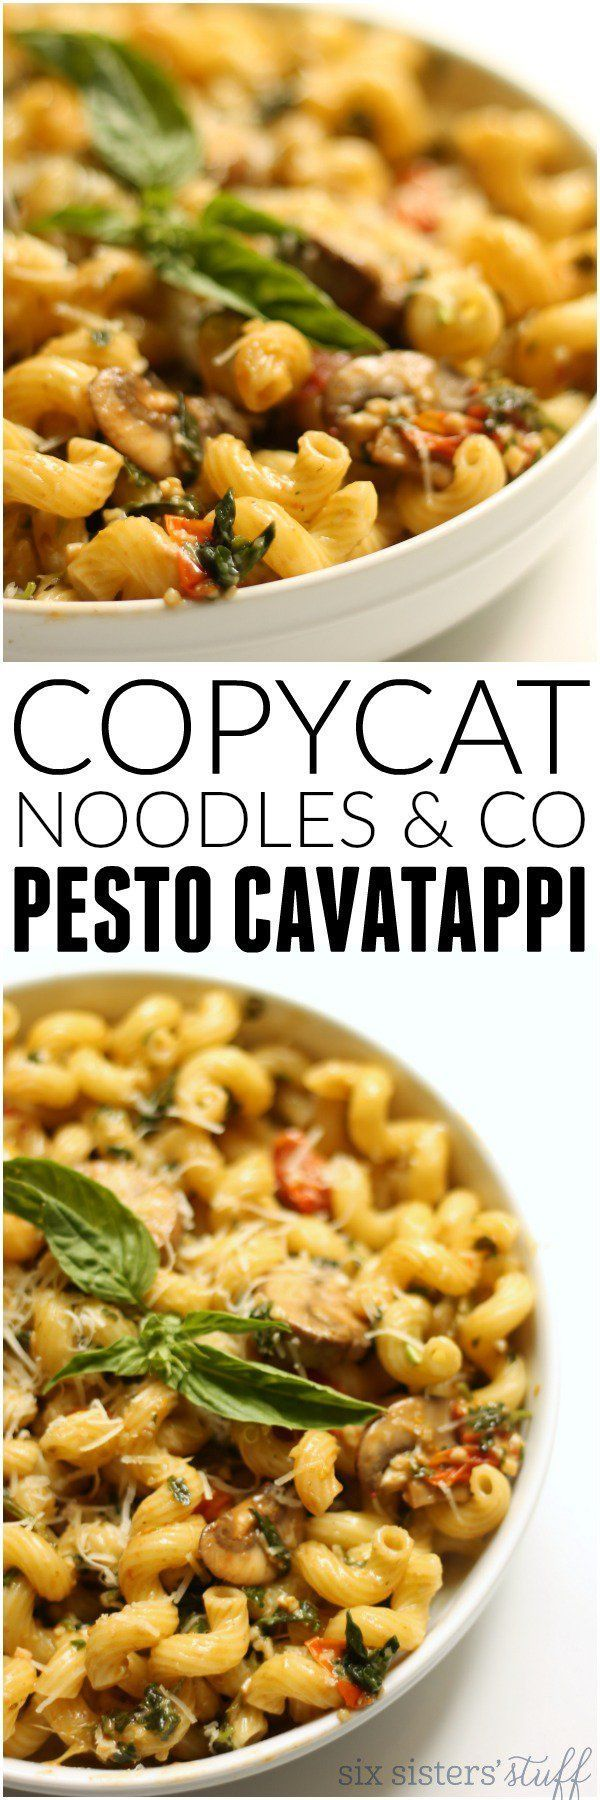 Copycat Noodles & Co Pesto Cavatappi from Six Sisters Stuff | Amazing Dinner Recipes | Meal Ideas for Company | Best Pasta Dishes